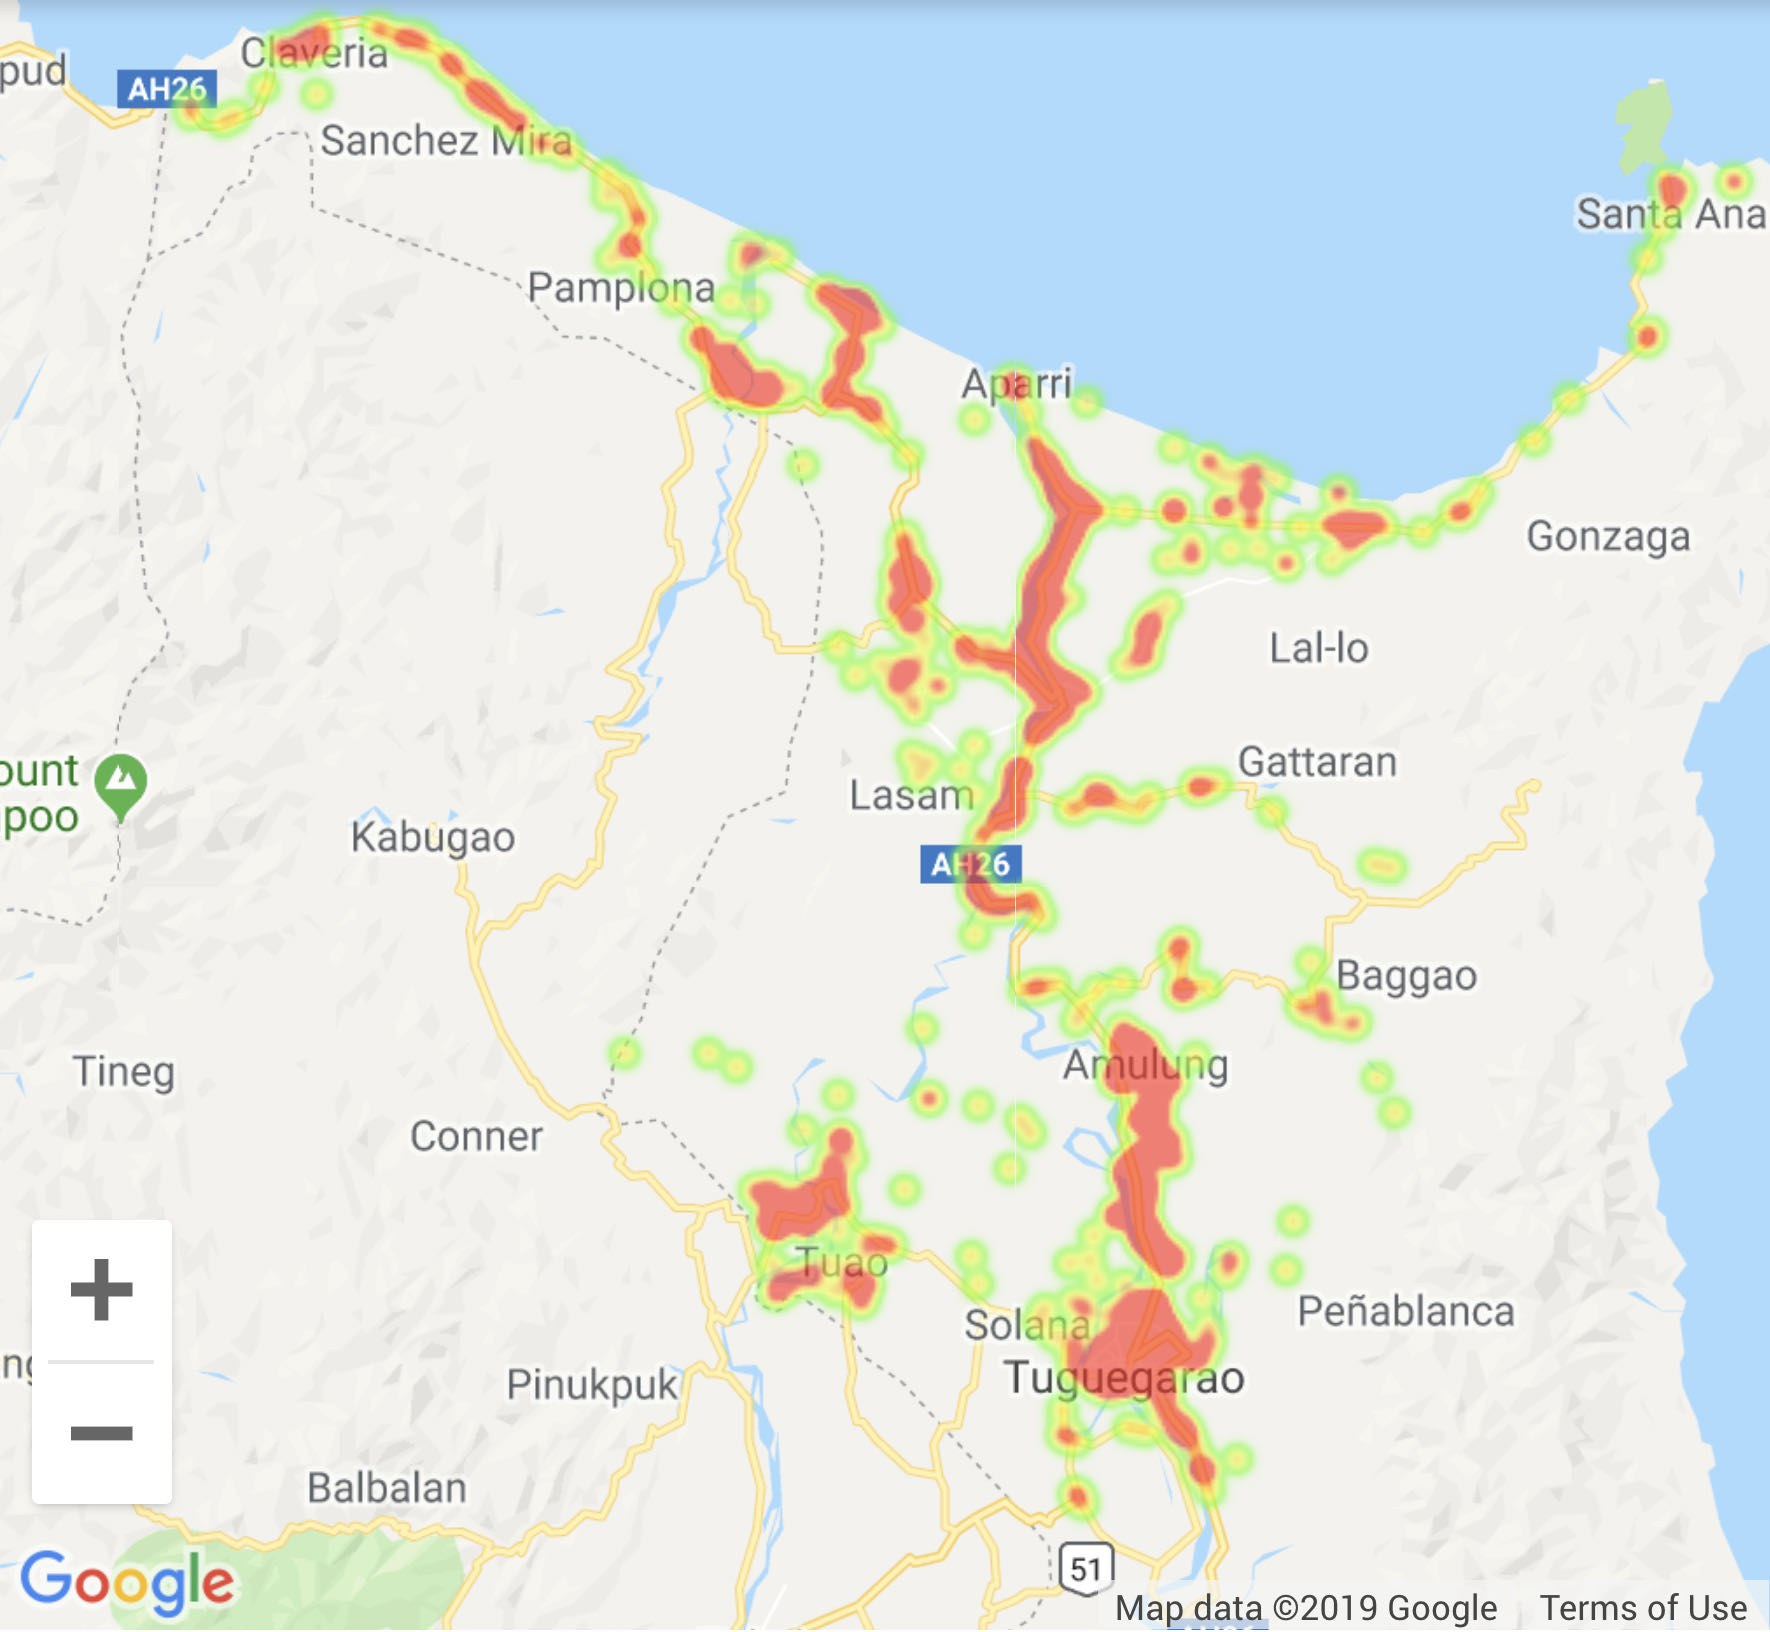 Figure 5.1. Areas in the Cagayan province marked in dark-grey have more occurrences of road crash incidents. Source: Rappler.